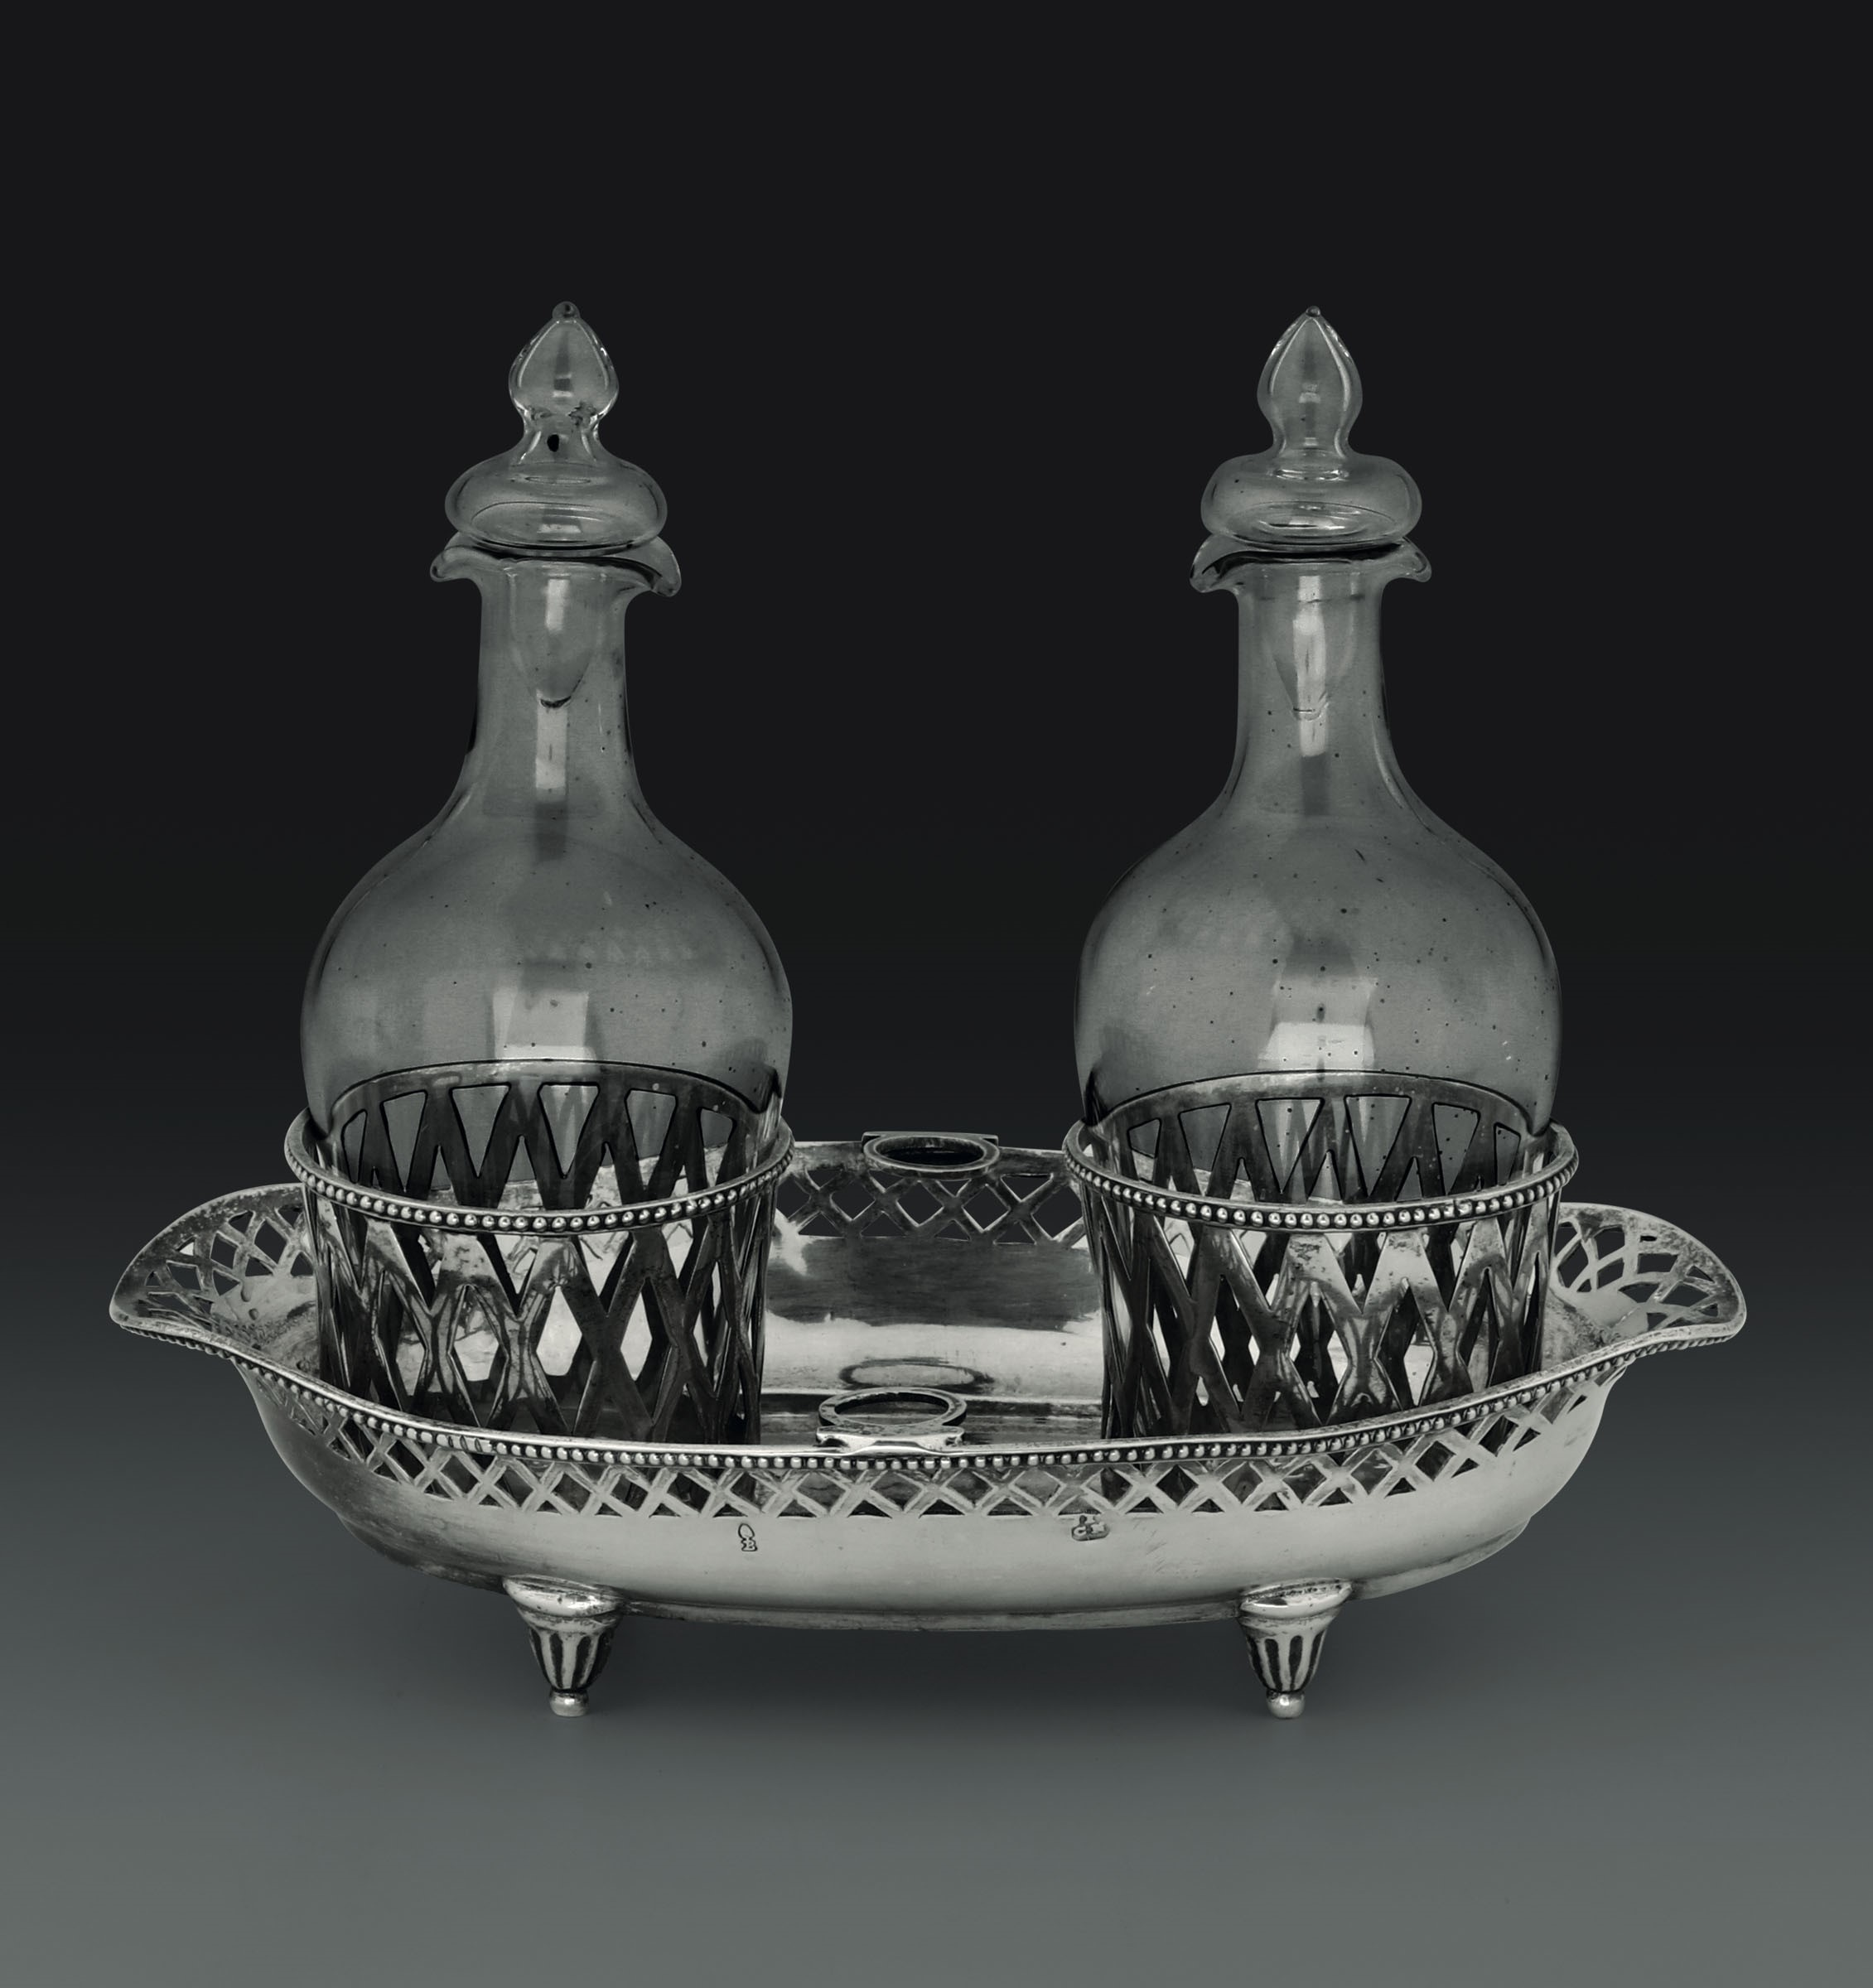 Lot 51 - A silver cruet stand, Germany, 1700s - - Molten, embossed, perforated and chiselled [...]